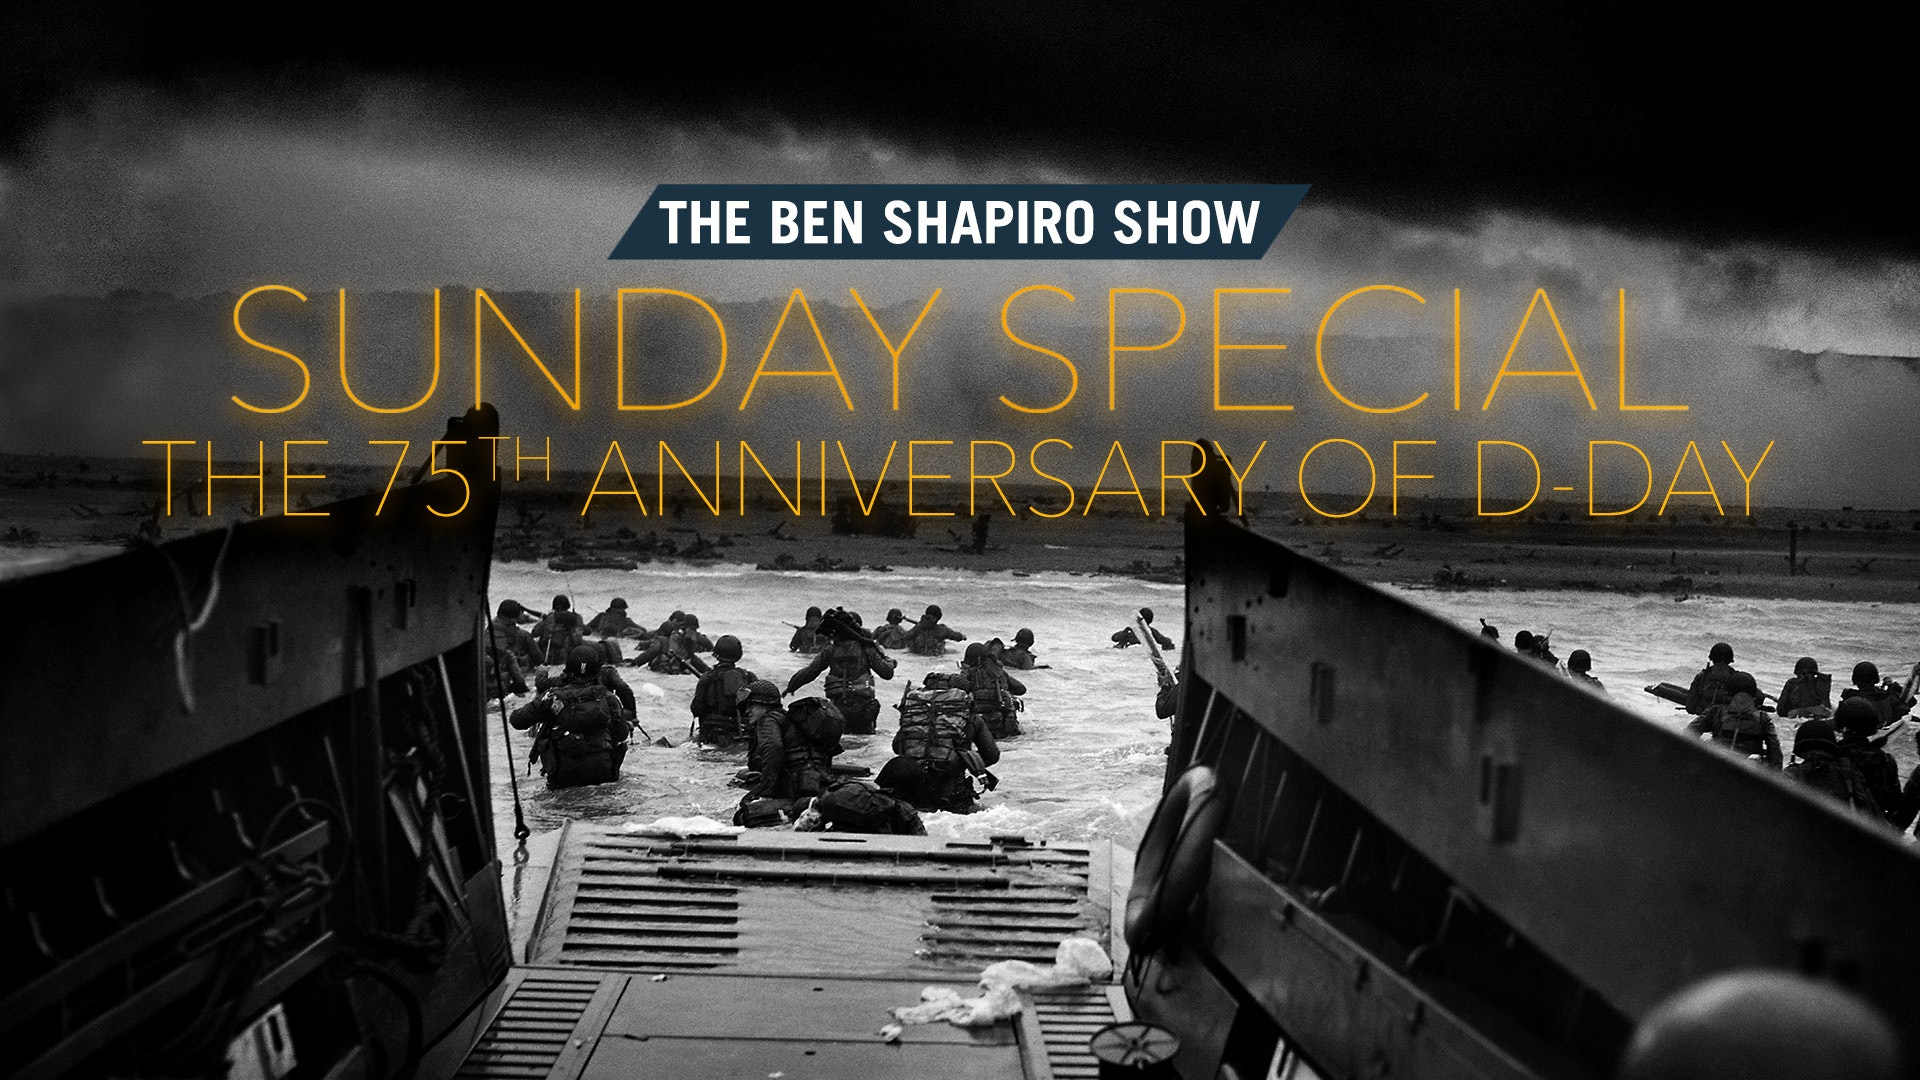 Ep. 53 - The 75th Anniversary Of D-Day